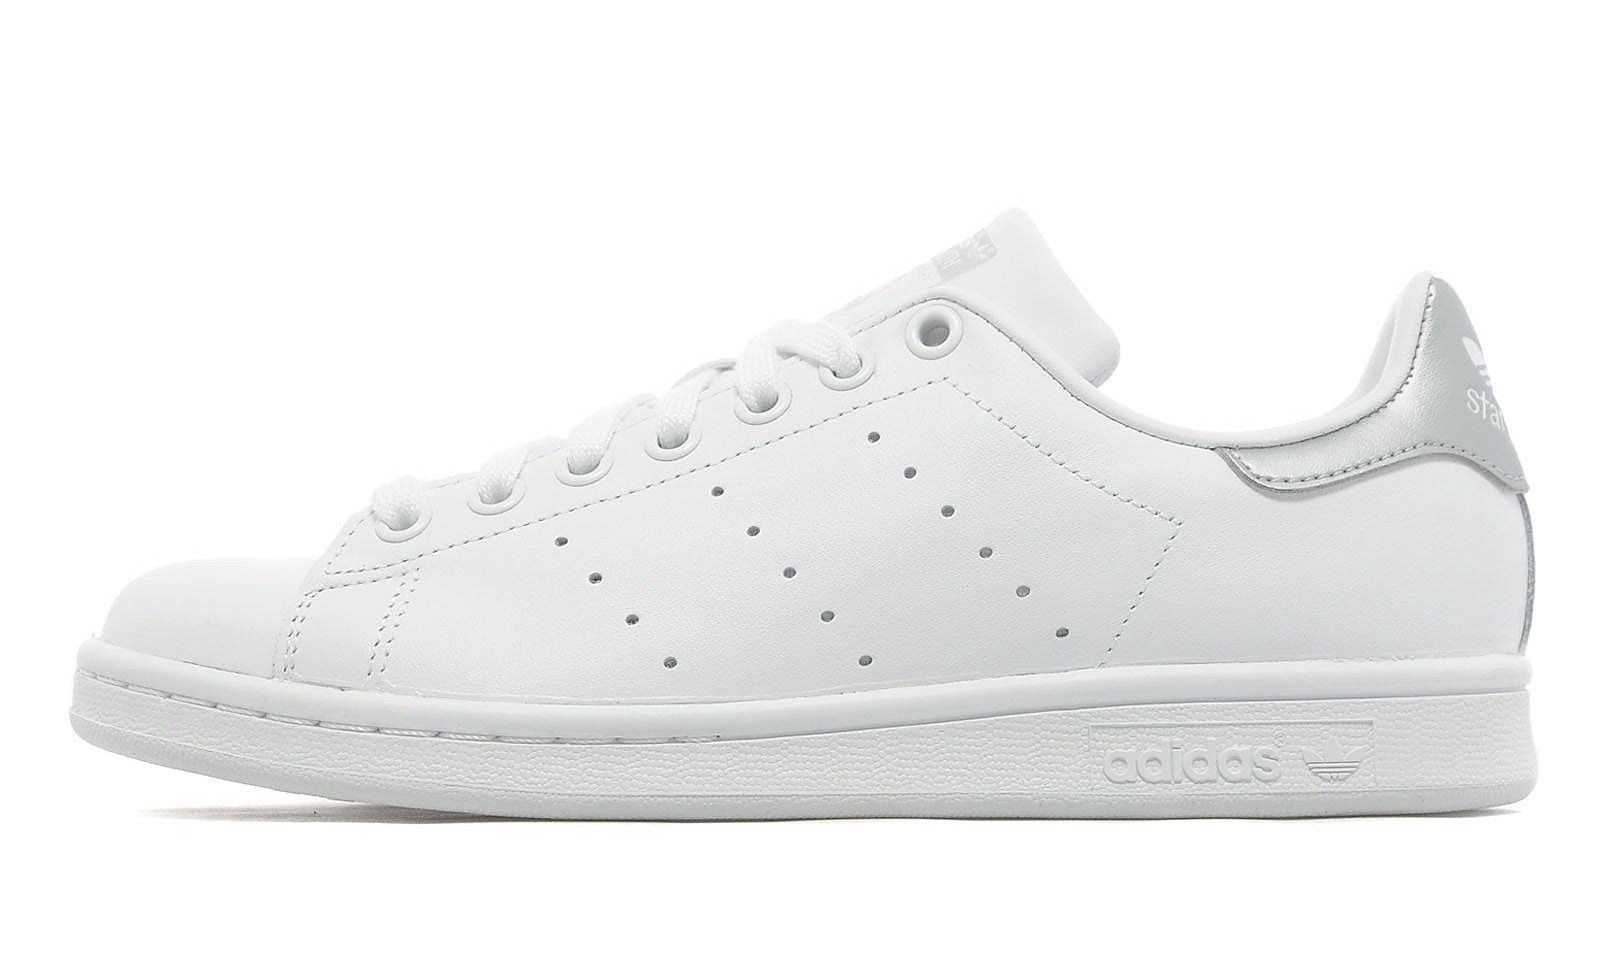 Adidas Stan Smith Silver Tab Women's - Pimp Kicks